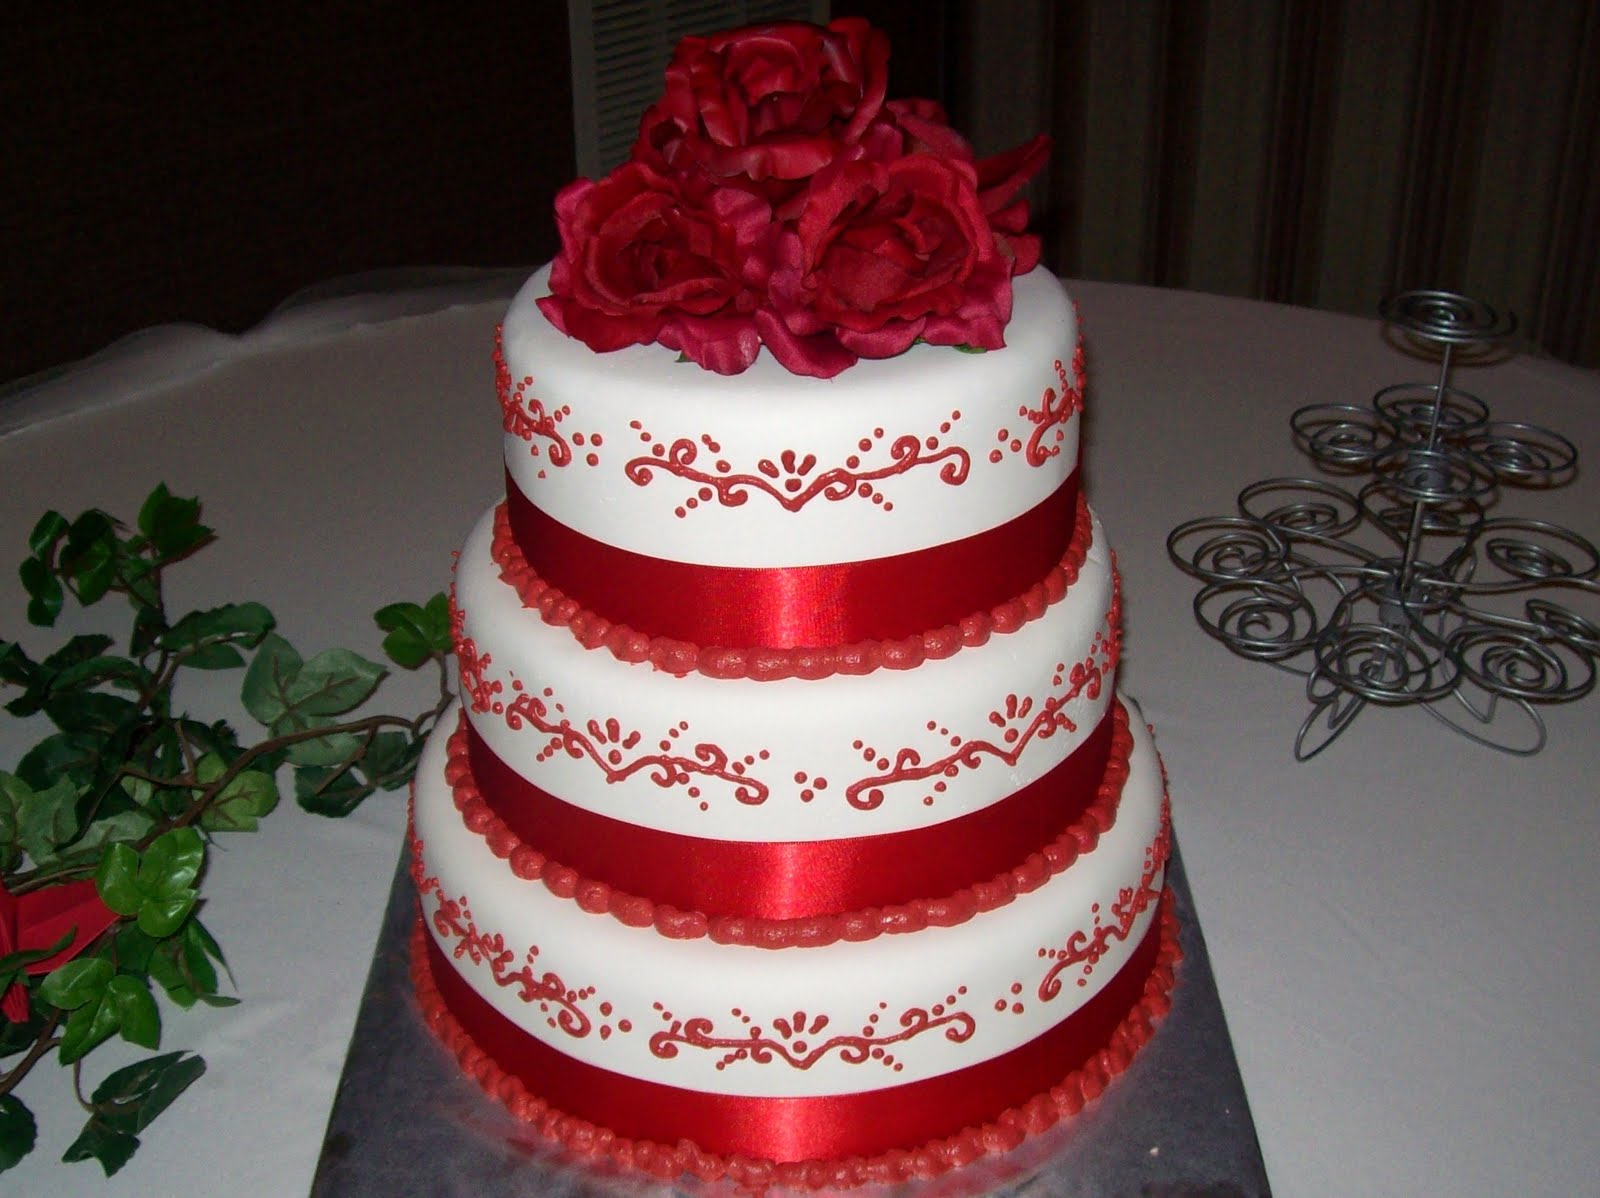 Sab cakes red on white wedding cake red on white wedding cake junglespirit Gallery